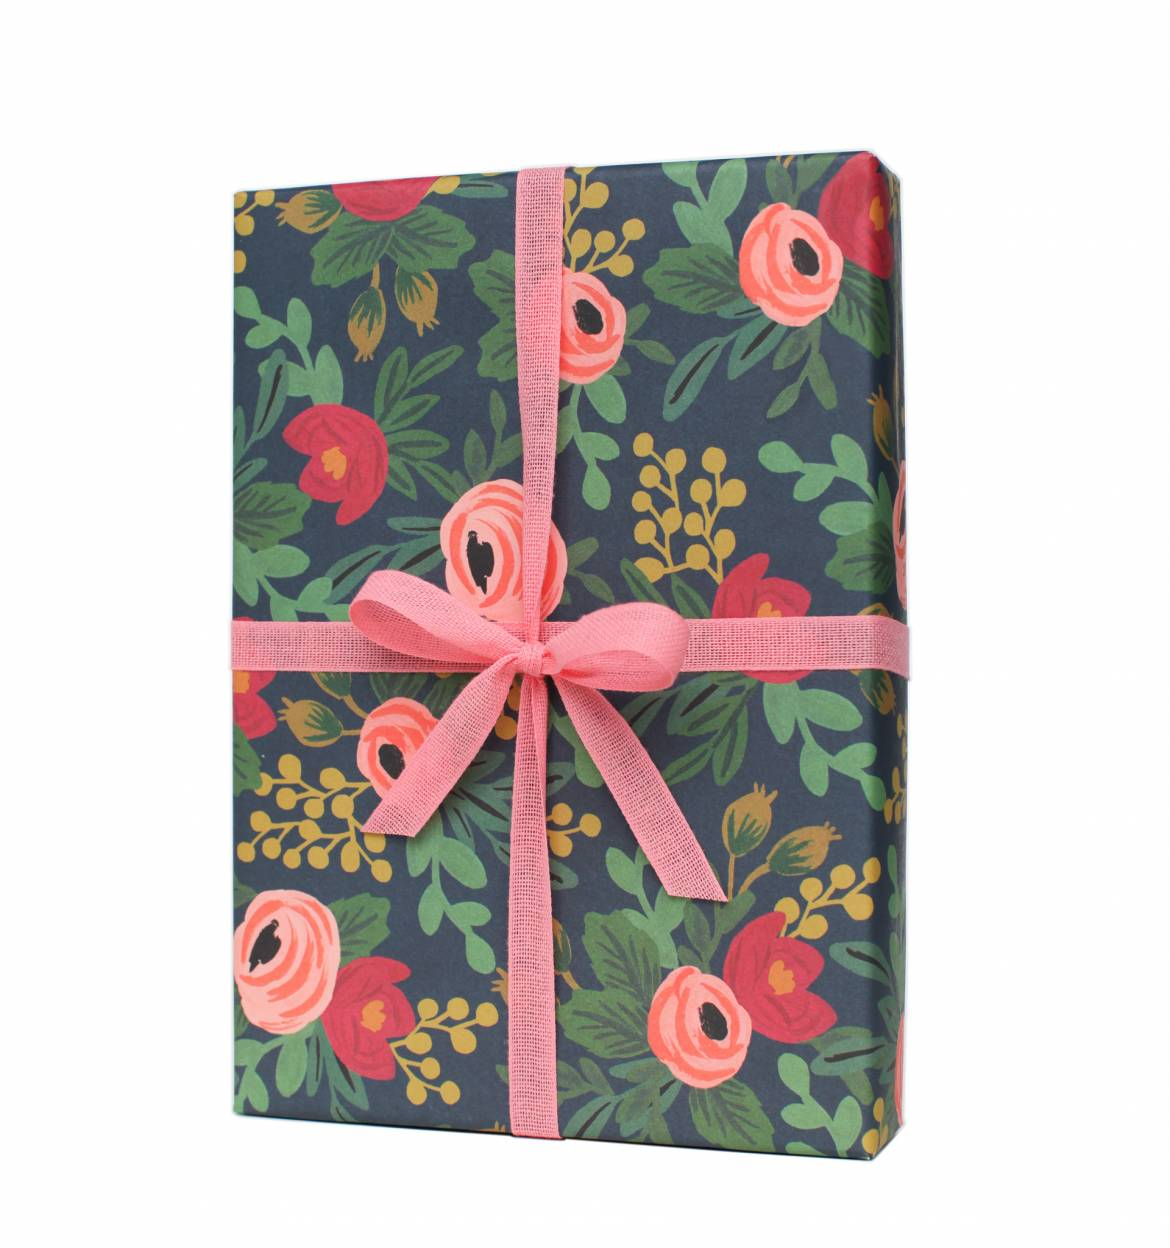 beautiful wrapping paper Simple & beautiful gift wrapping for t-shirt and more paper guru  wrapping paper:  simple & beautiful gift wrapping ideas - duration: .